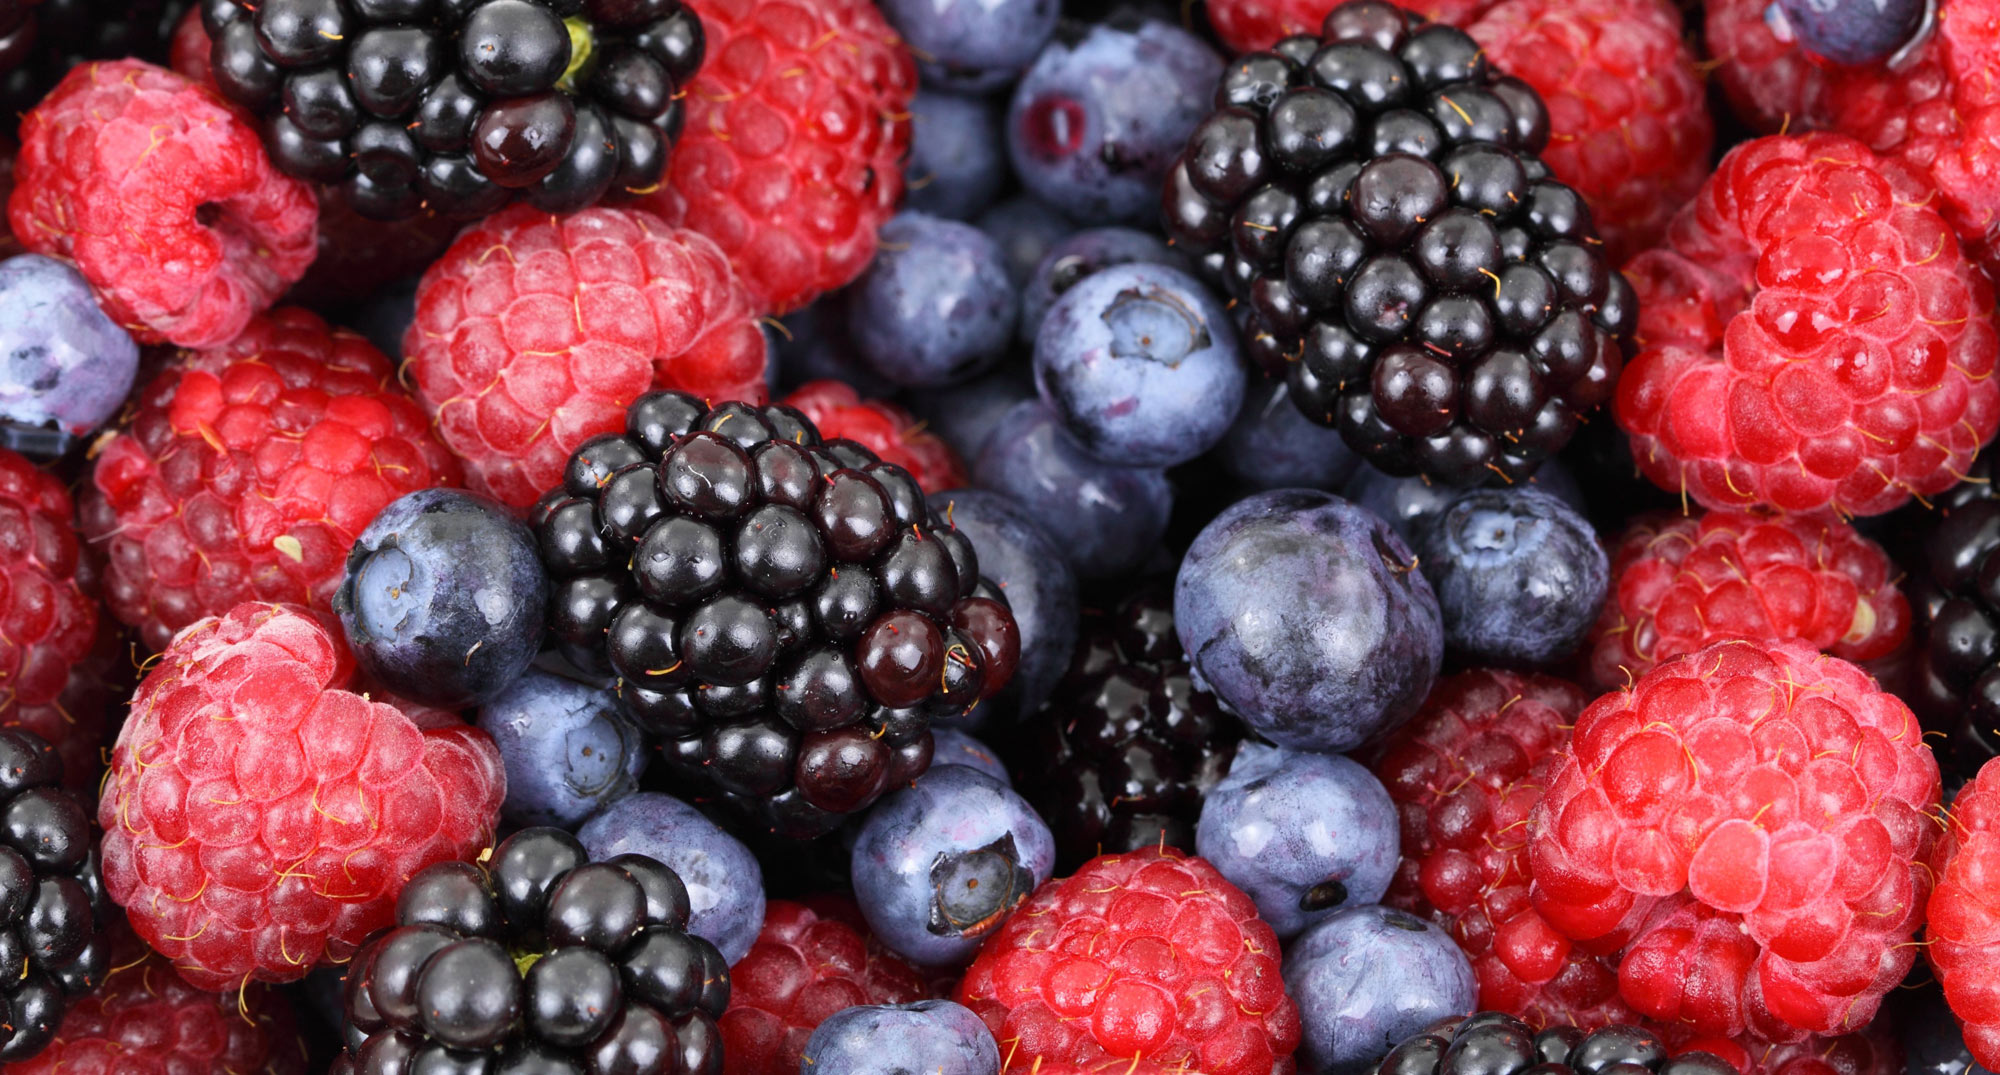 Are Your Superfoods Being Absorbed?